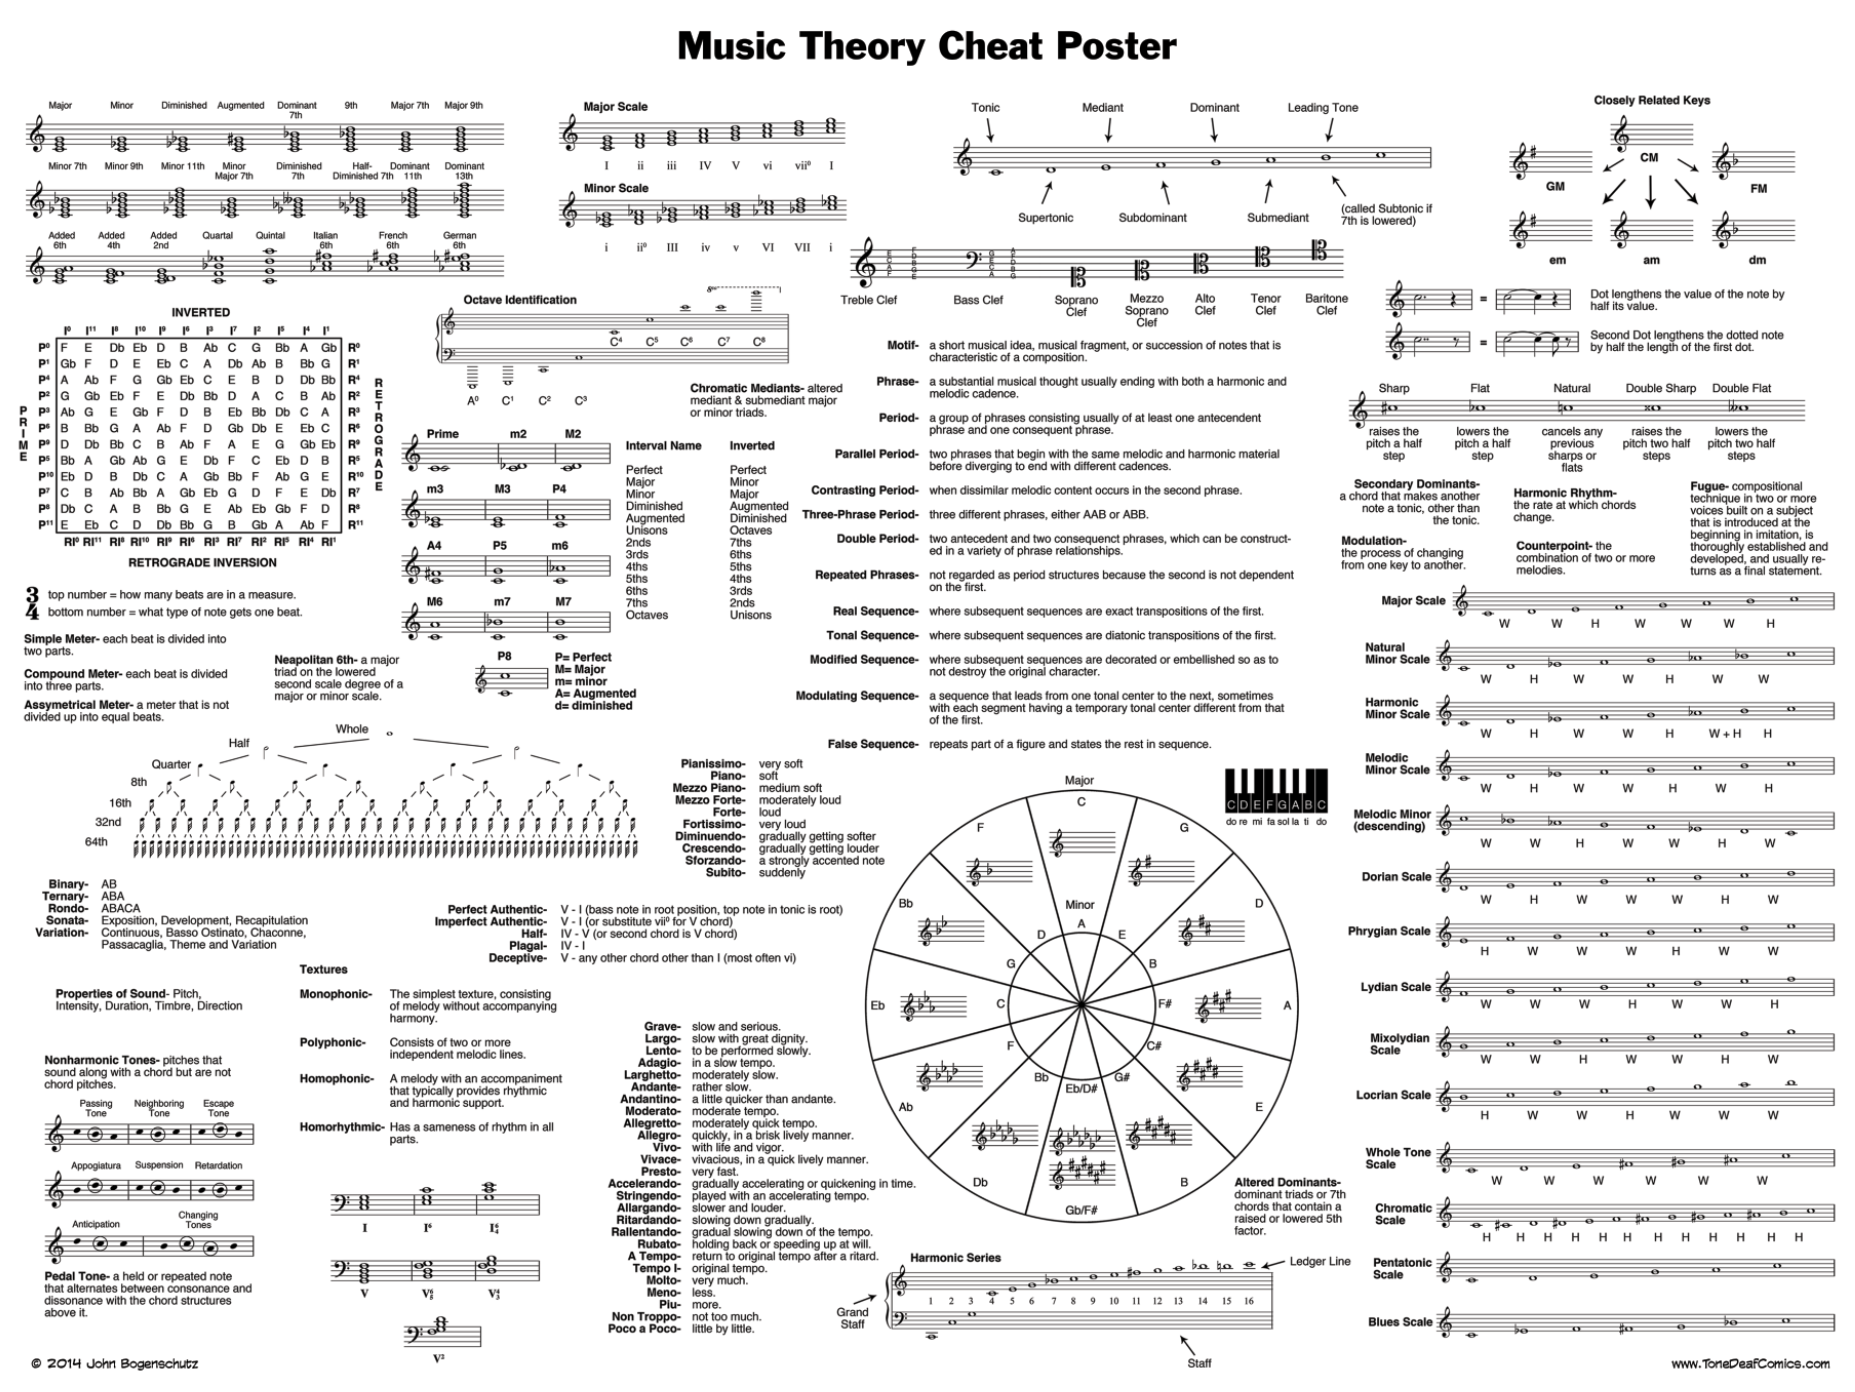 theory cheat music sheet poster guitar piano posters challenge sheets chart violin comments timeline guitars cello classroom recent posts